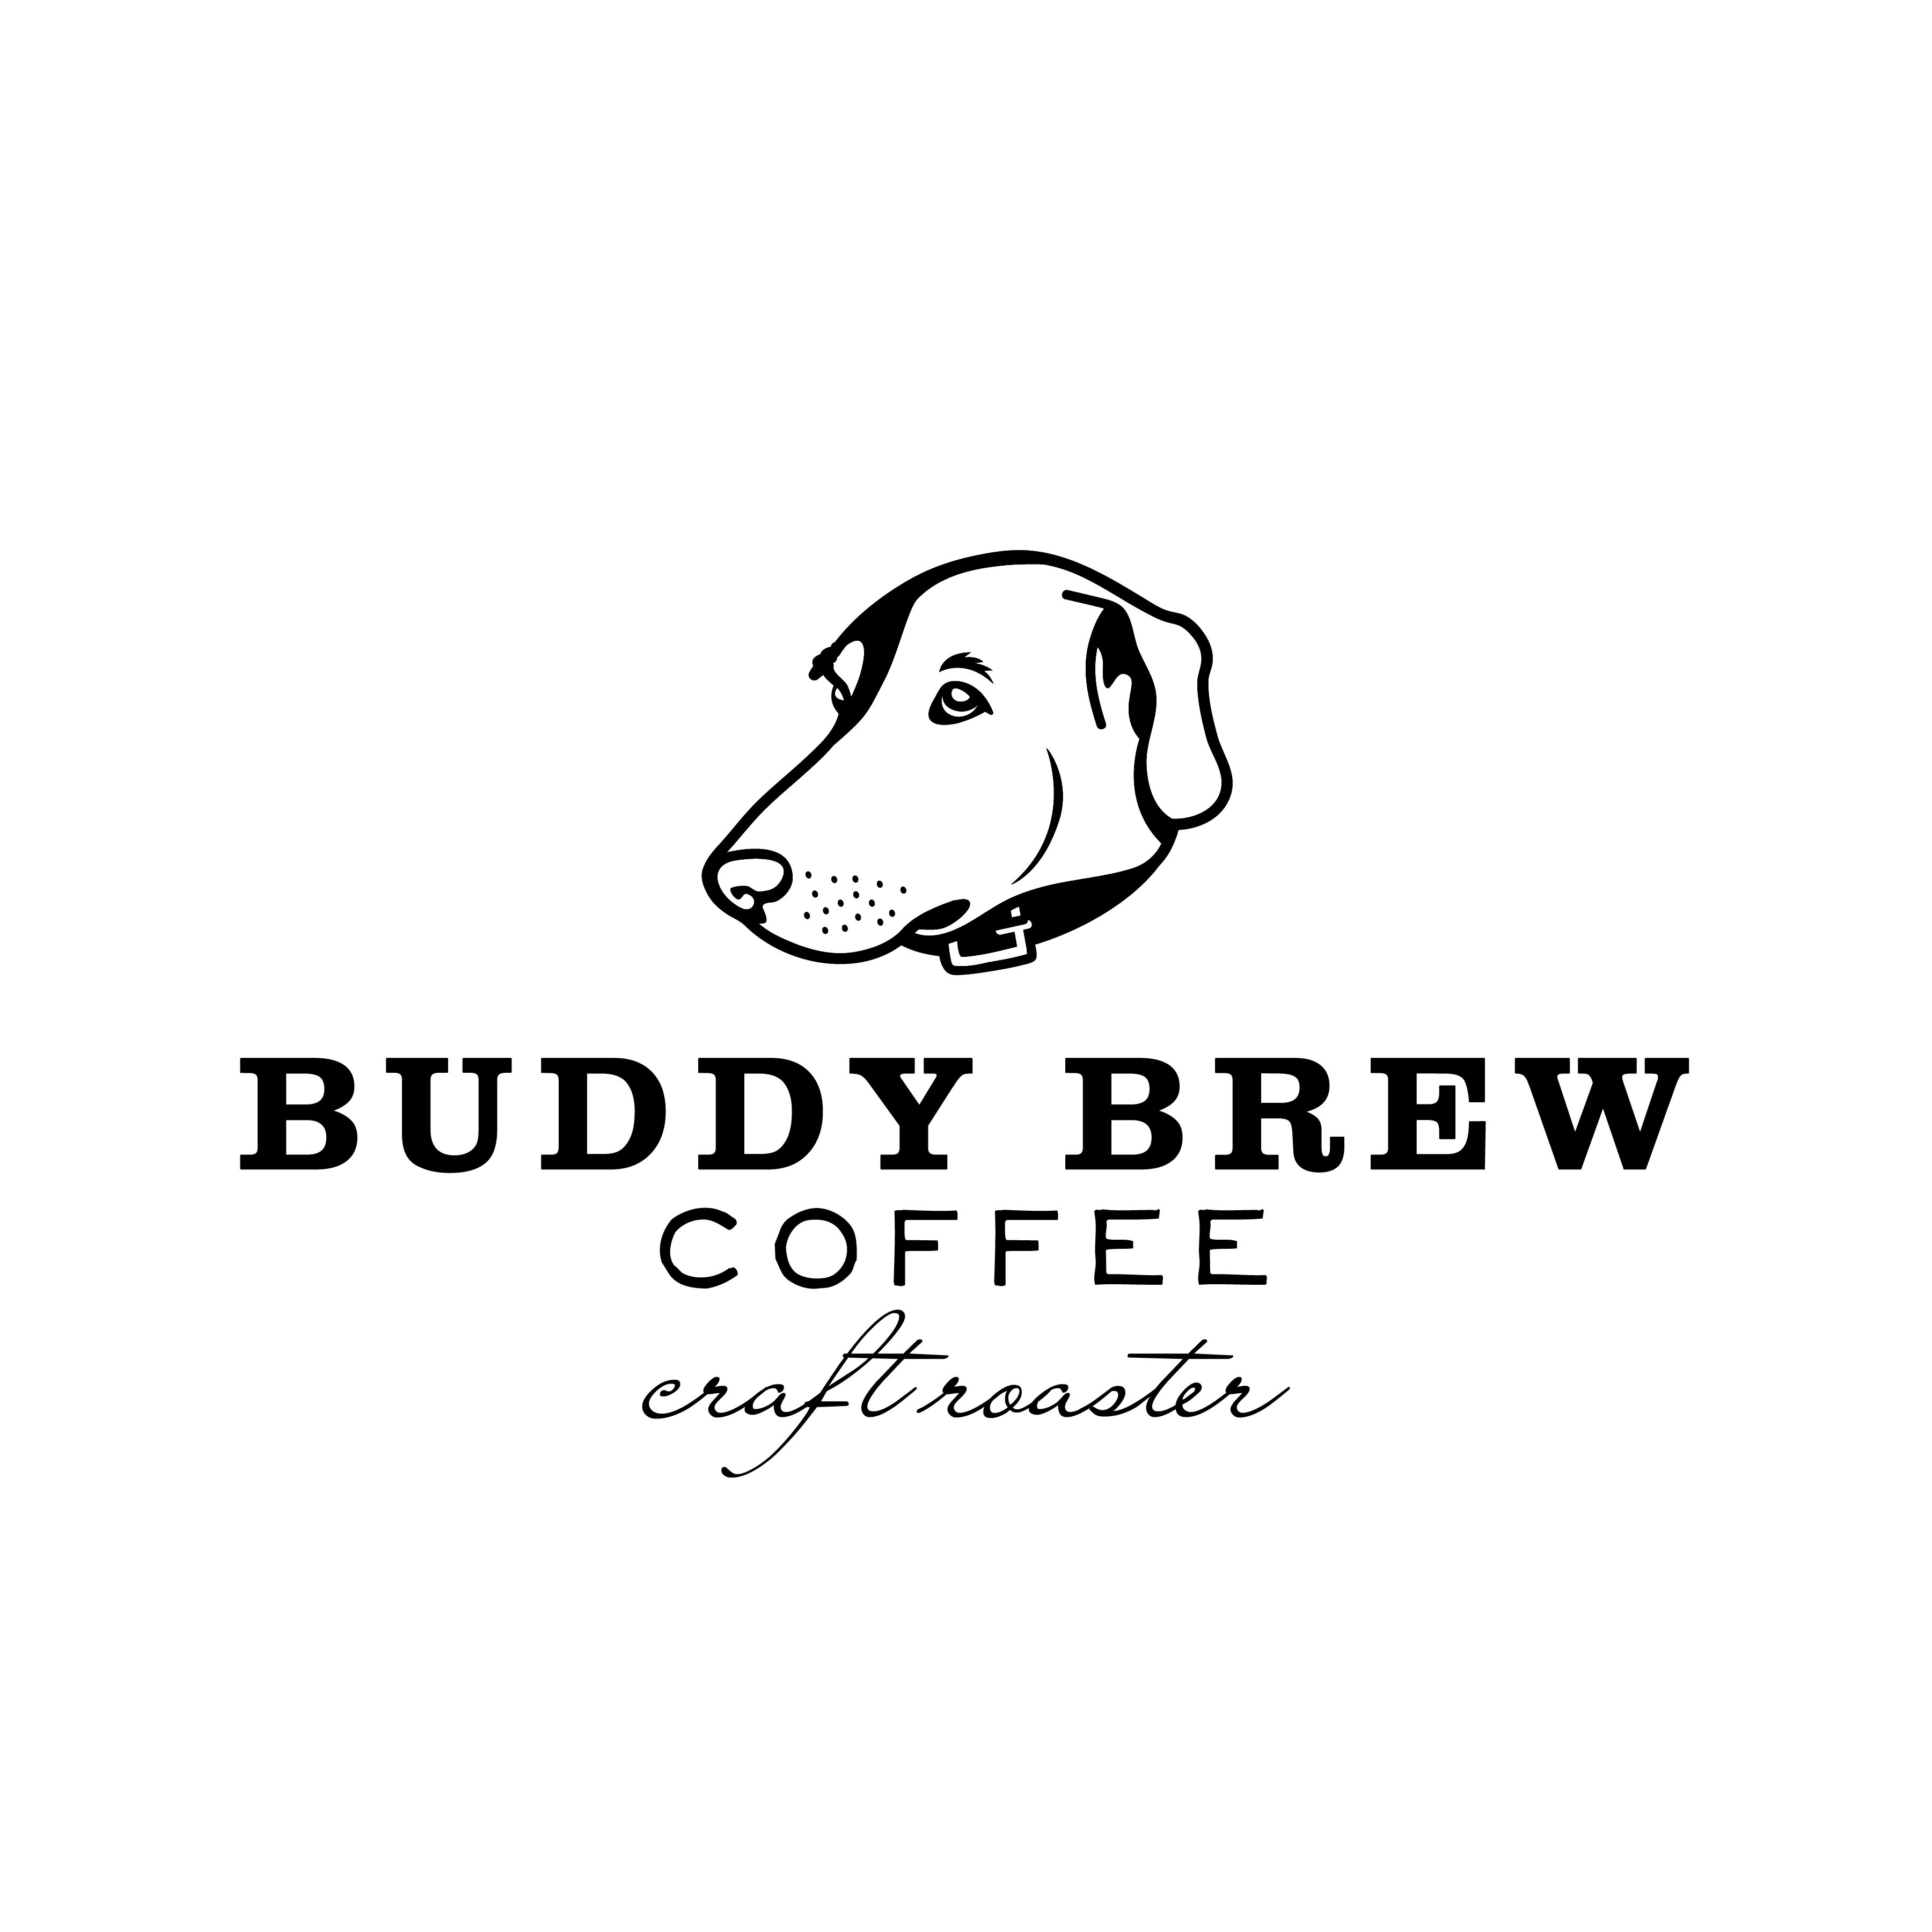 Buddy Brew Coffee Pictures